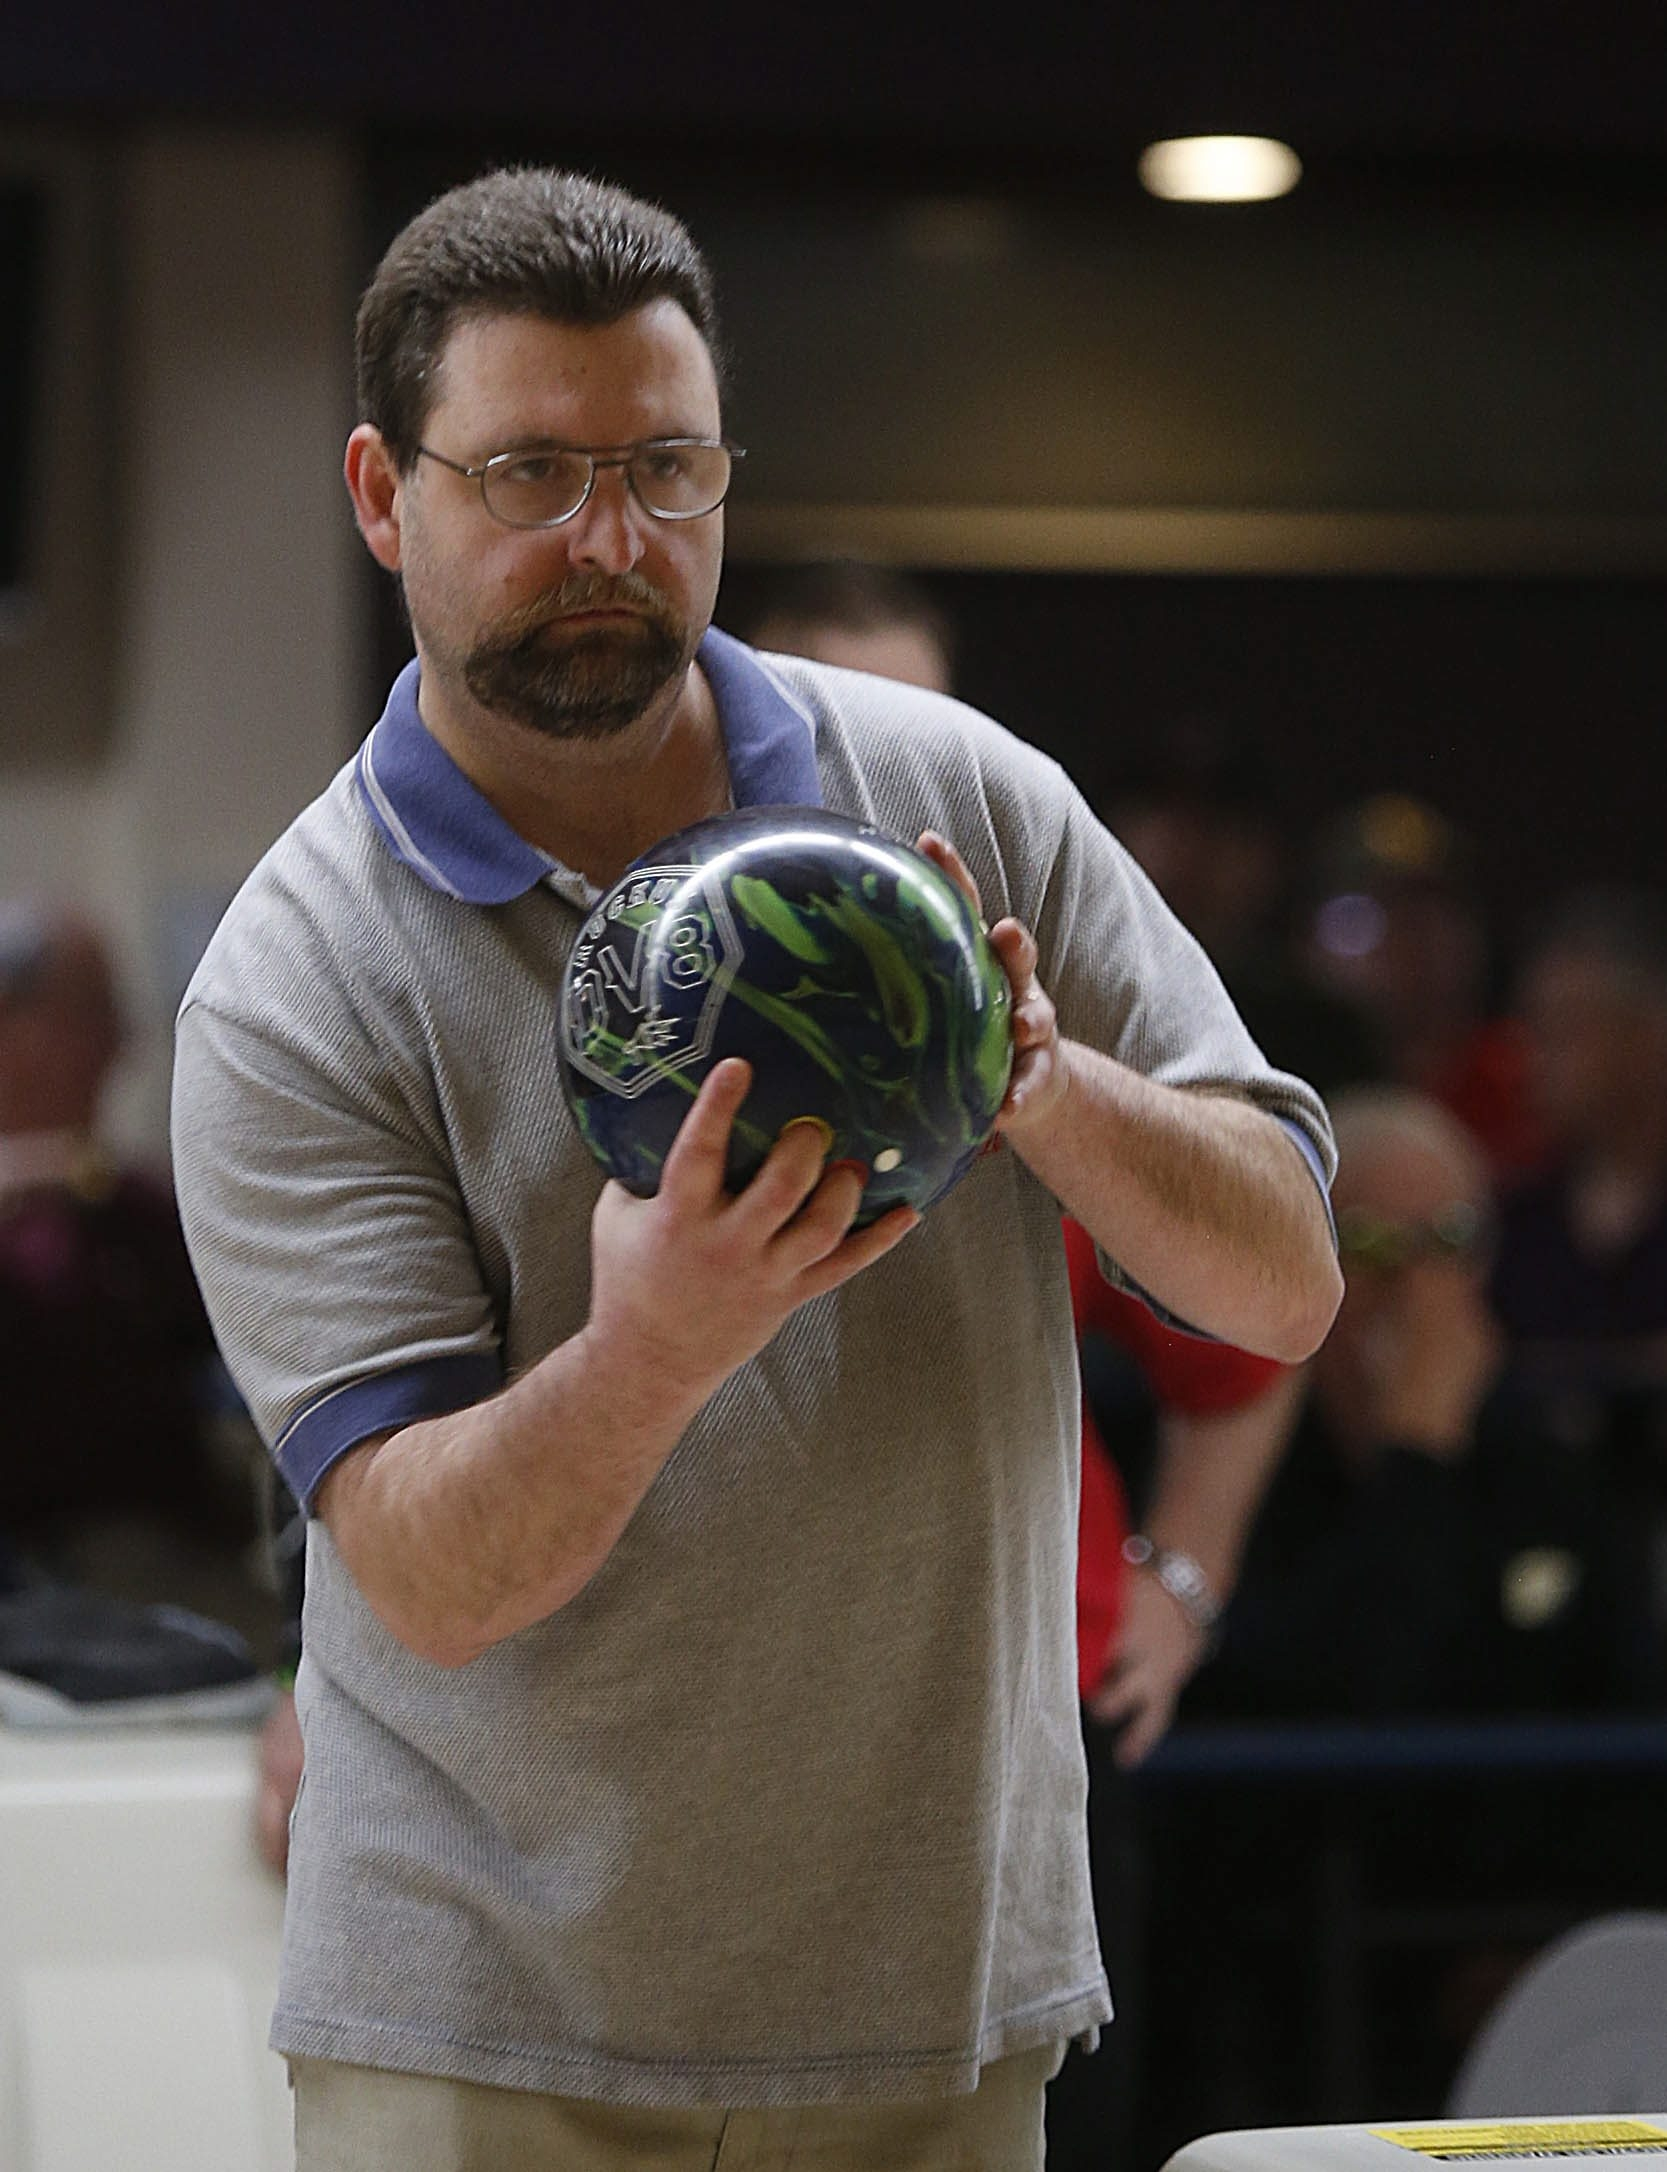 Mike Zarcone defeated Frank Bellavia Jr., 593-544, in the title match of the George A. Obenauer Masters.